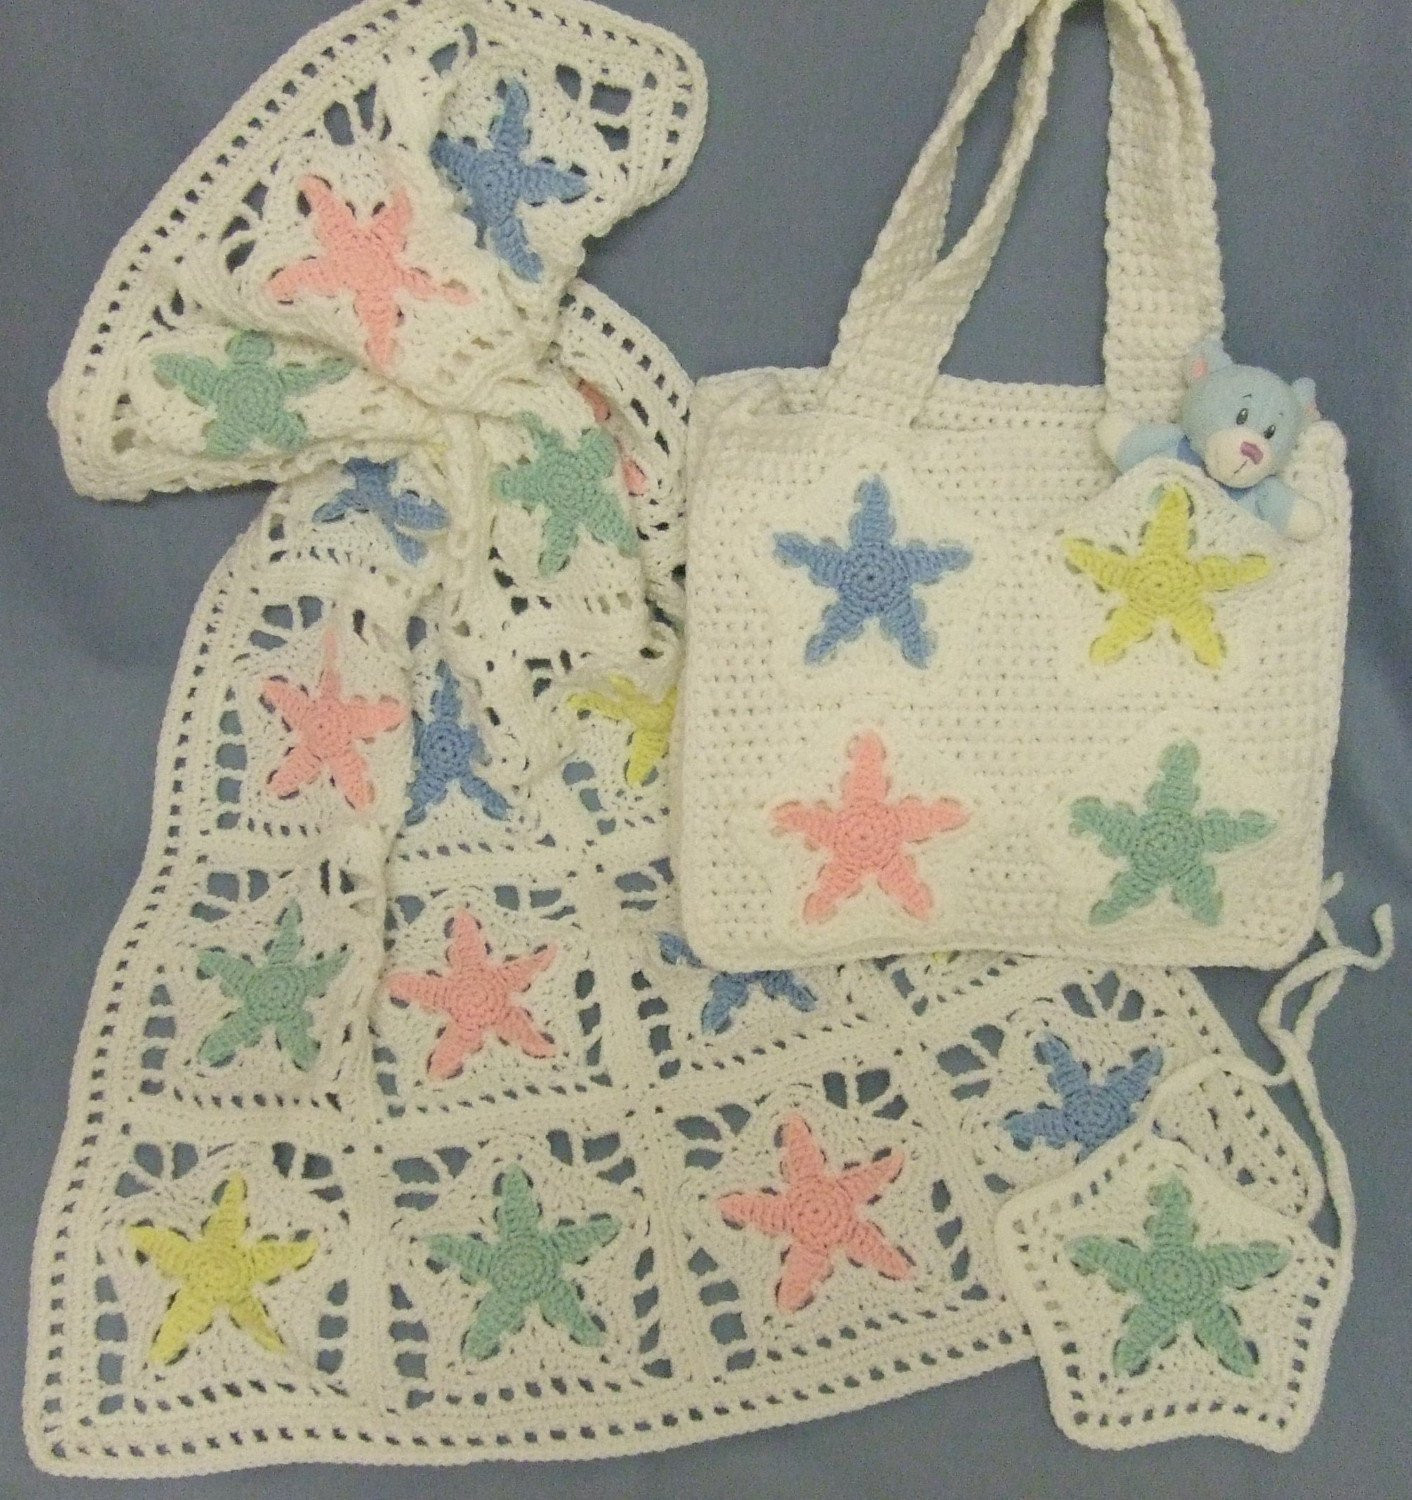 Star Blanket Crochet Pattern New Crochet Pattern Cv002 Star Baby Blanket and Diaper Bag Pdf Of Adorable 46 Pictures Star Blanket Crochet Pattern